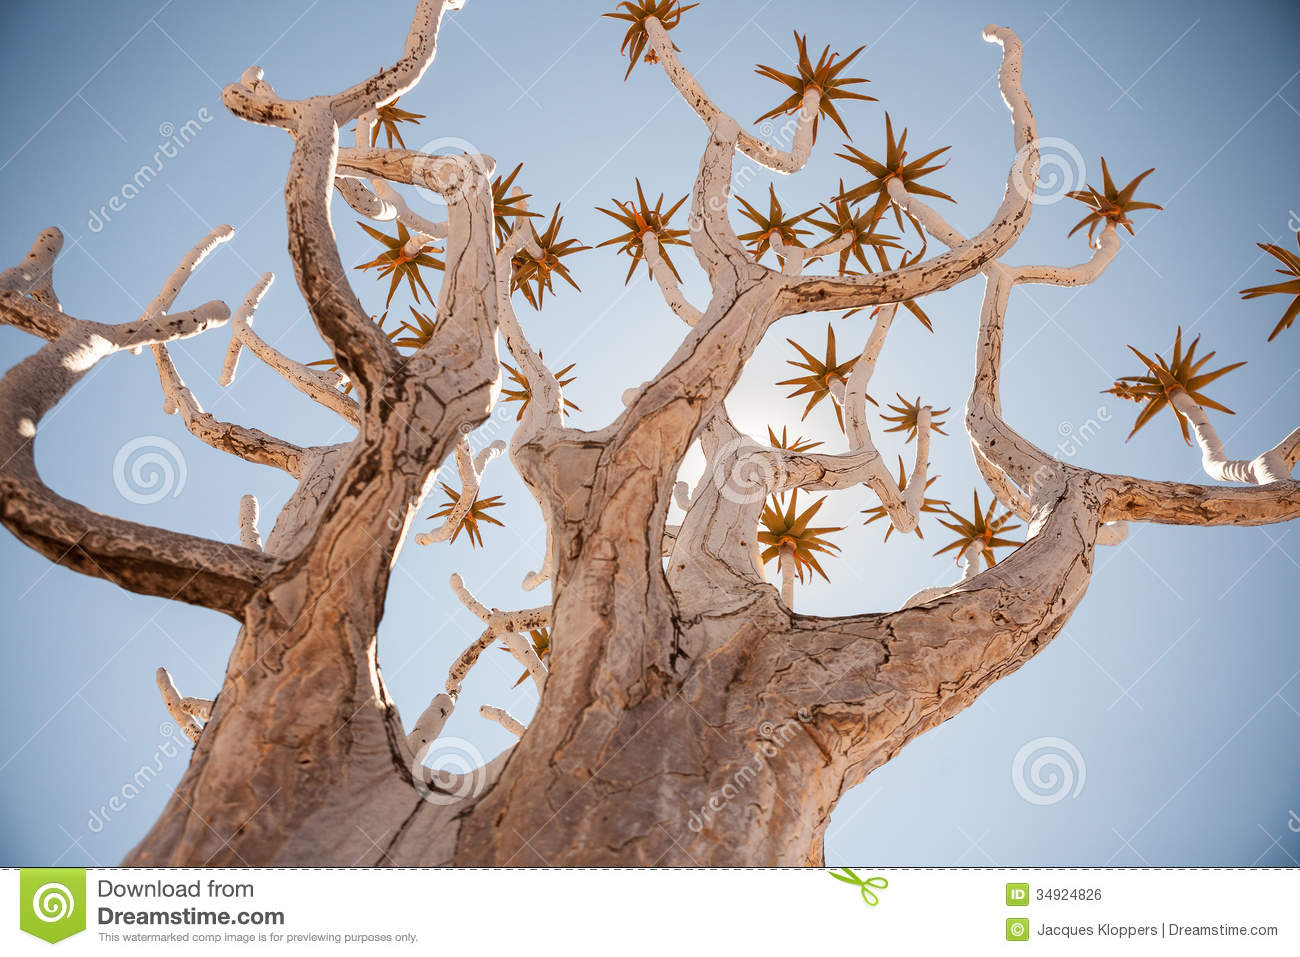 Generic Quiver Tree Shot From Dynamic Angle Royalty Free Stock.